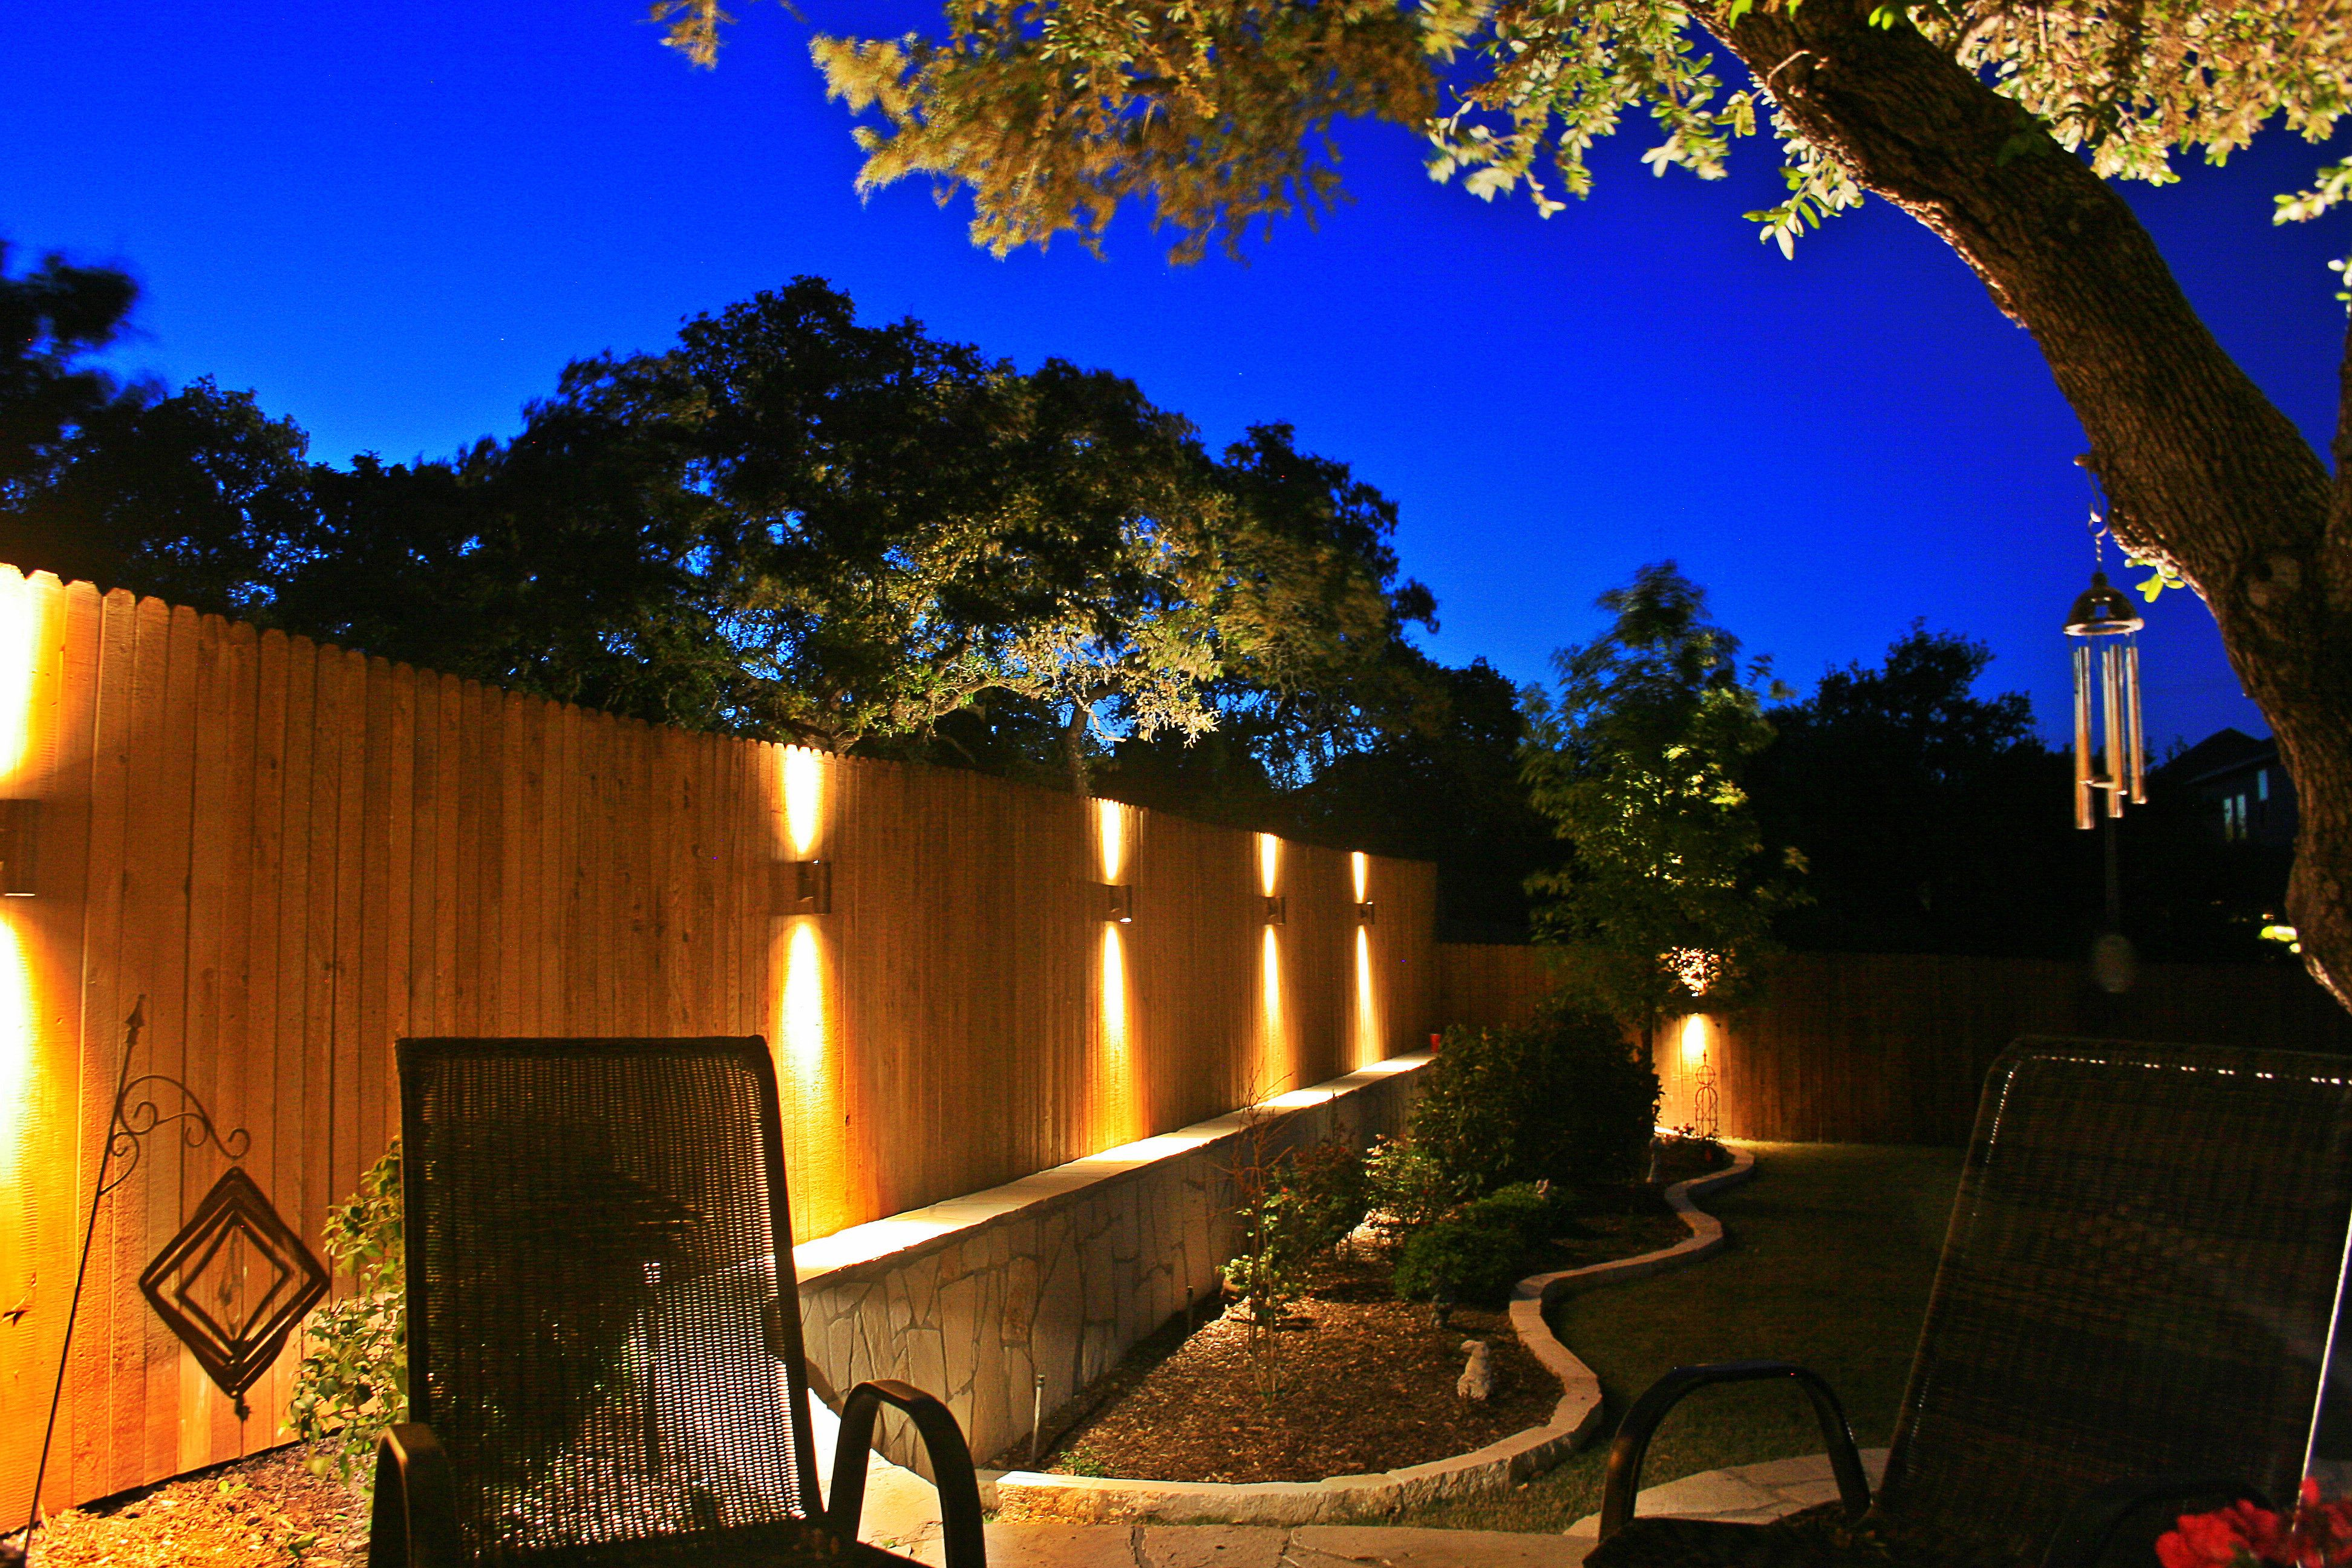 Up / Down Sconce Lighting on the Fence created dramatic